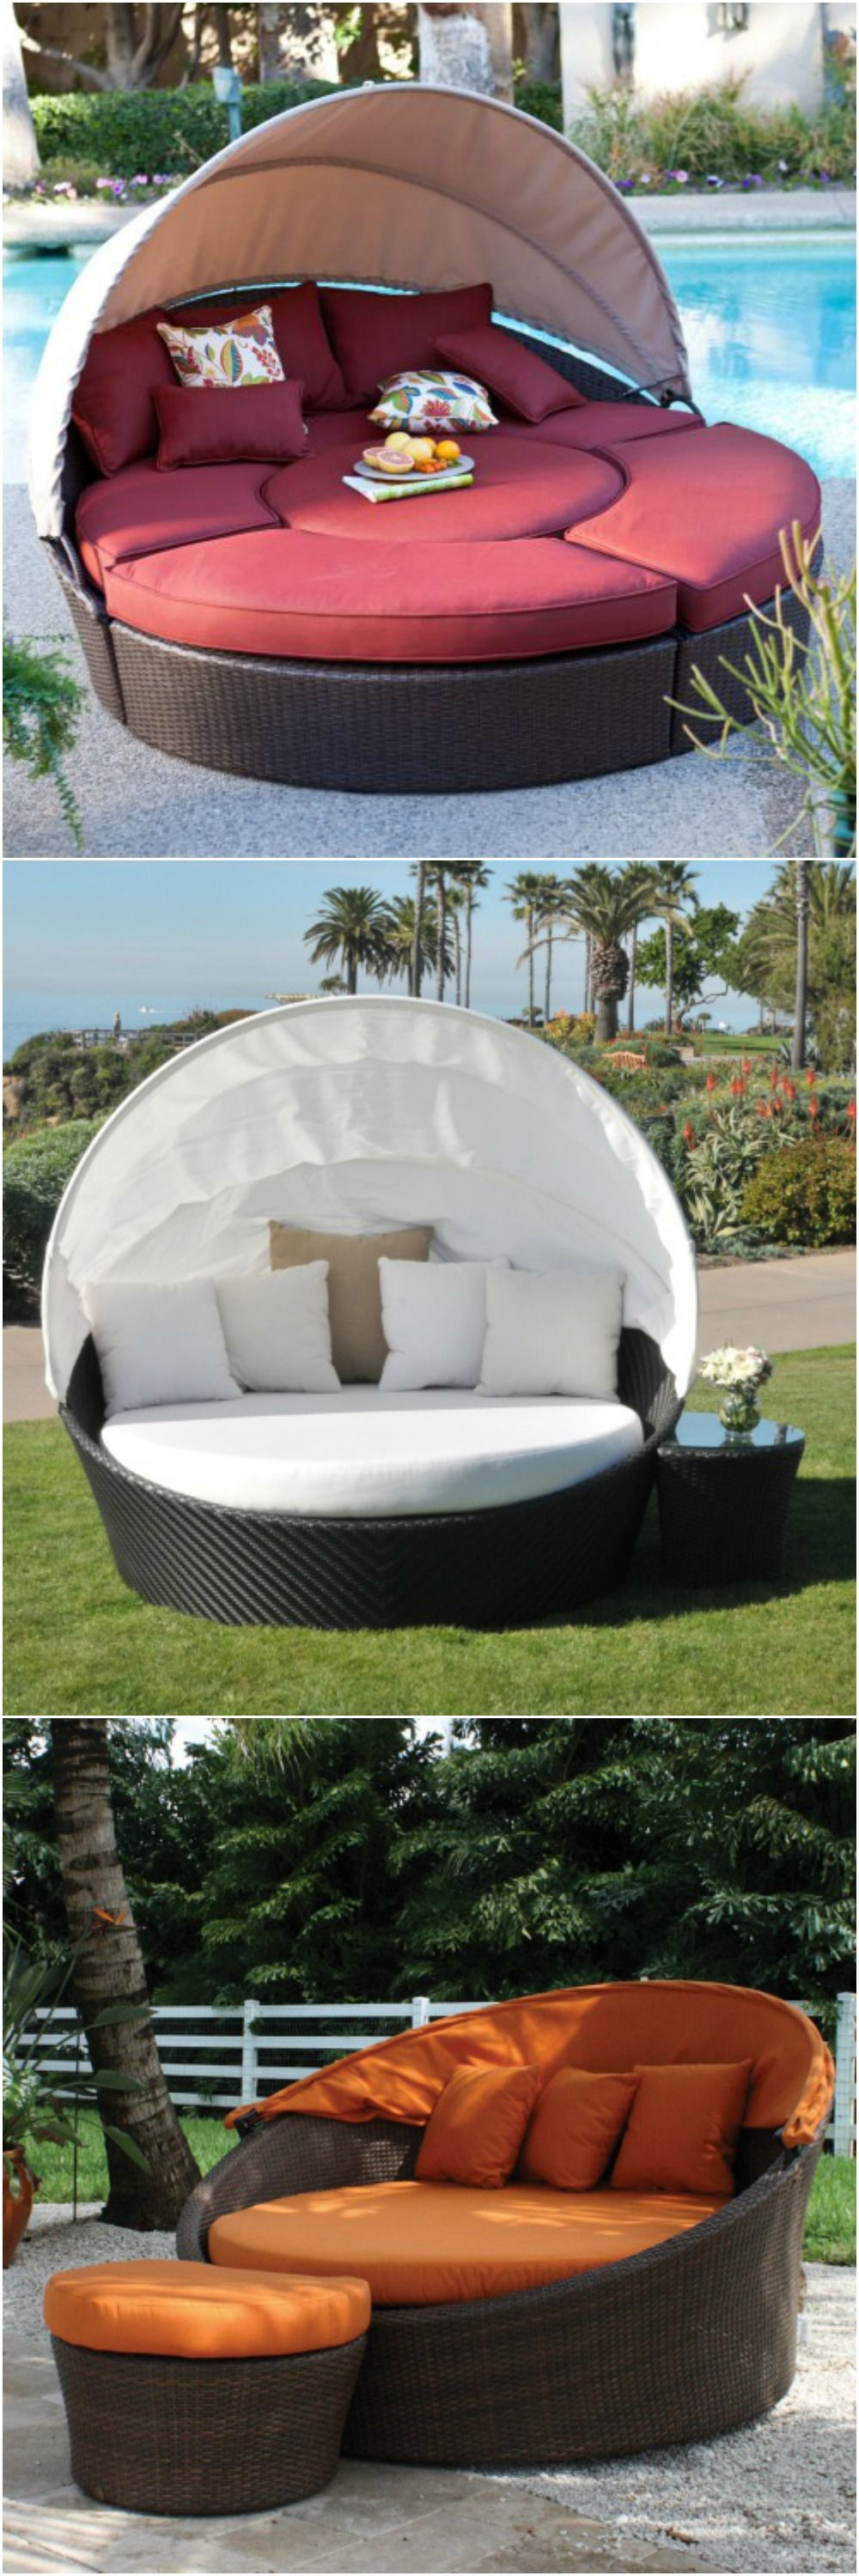 Outdoor daybeds. | Outdoor daybed, Backyard furniture ... on Living Spaces Outdoor Daybed id=32948